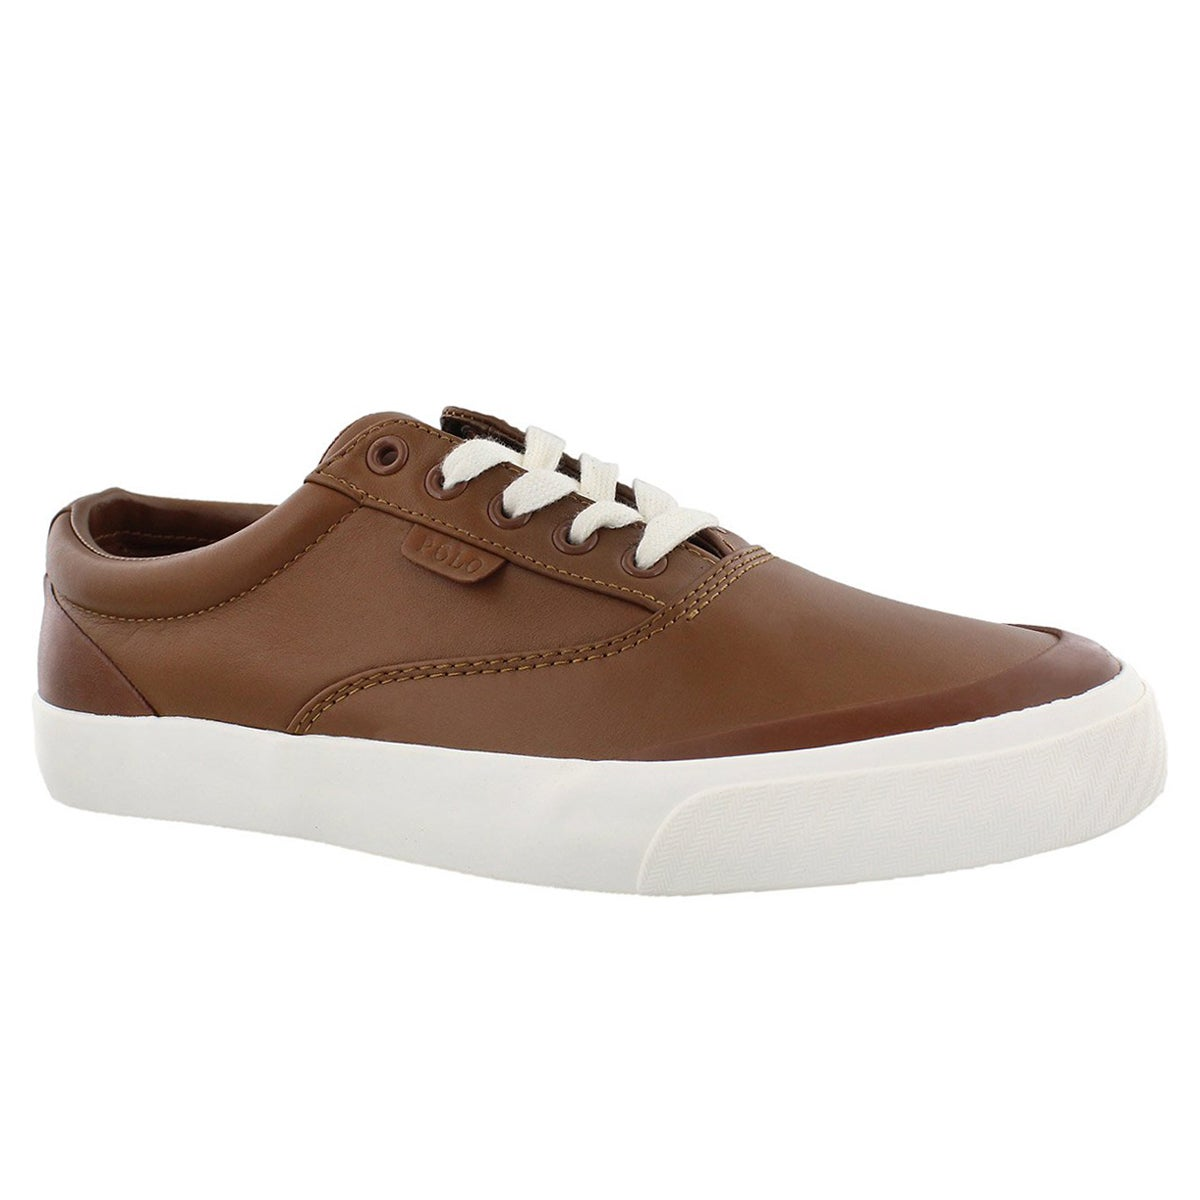 Mns Izzah deep tan lace up sneaker